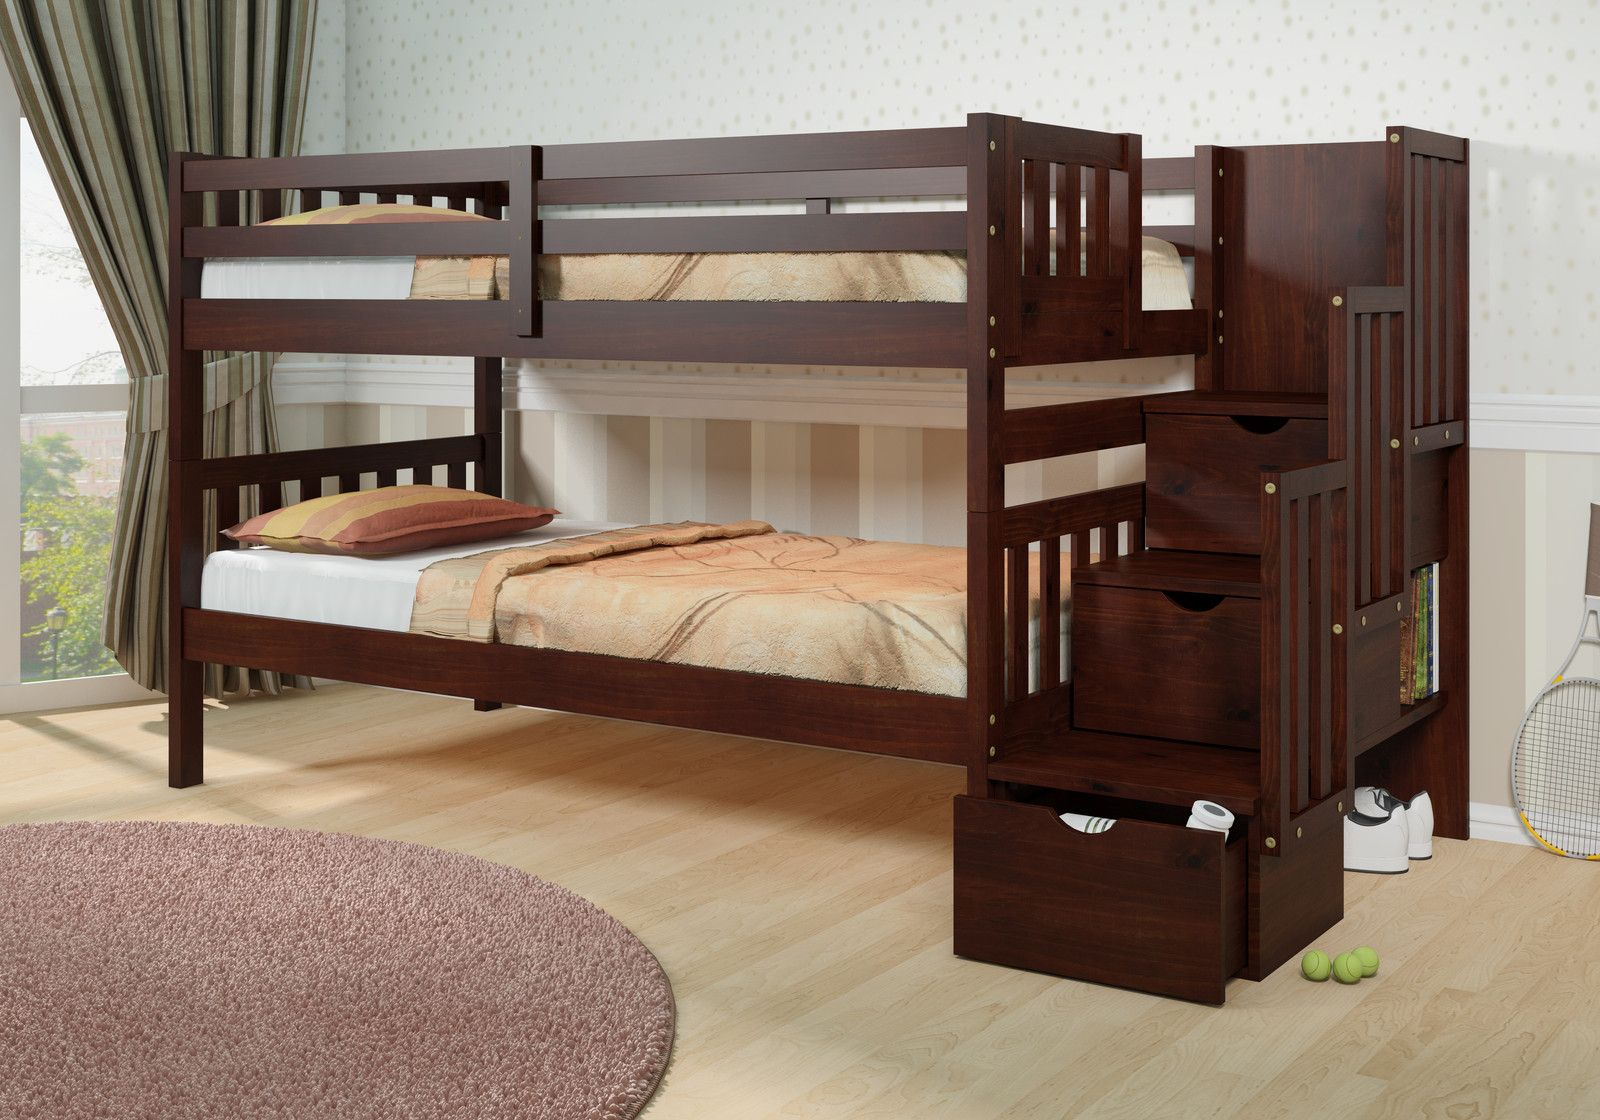 Solid Wood Espresso Staircase Bunk Bed With Extra Storage Dream Rooms Furniture Kids Bunk Beds Bunk Beds Bunk Beds With Stairs